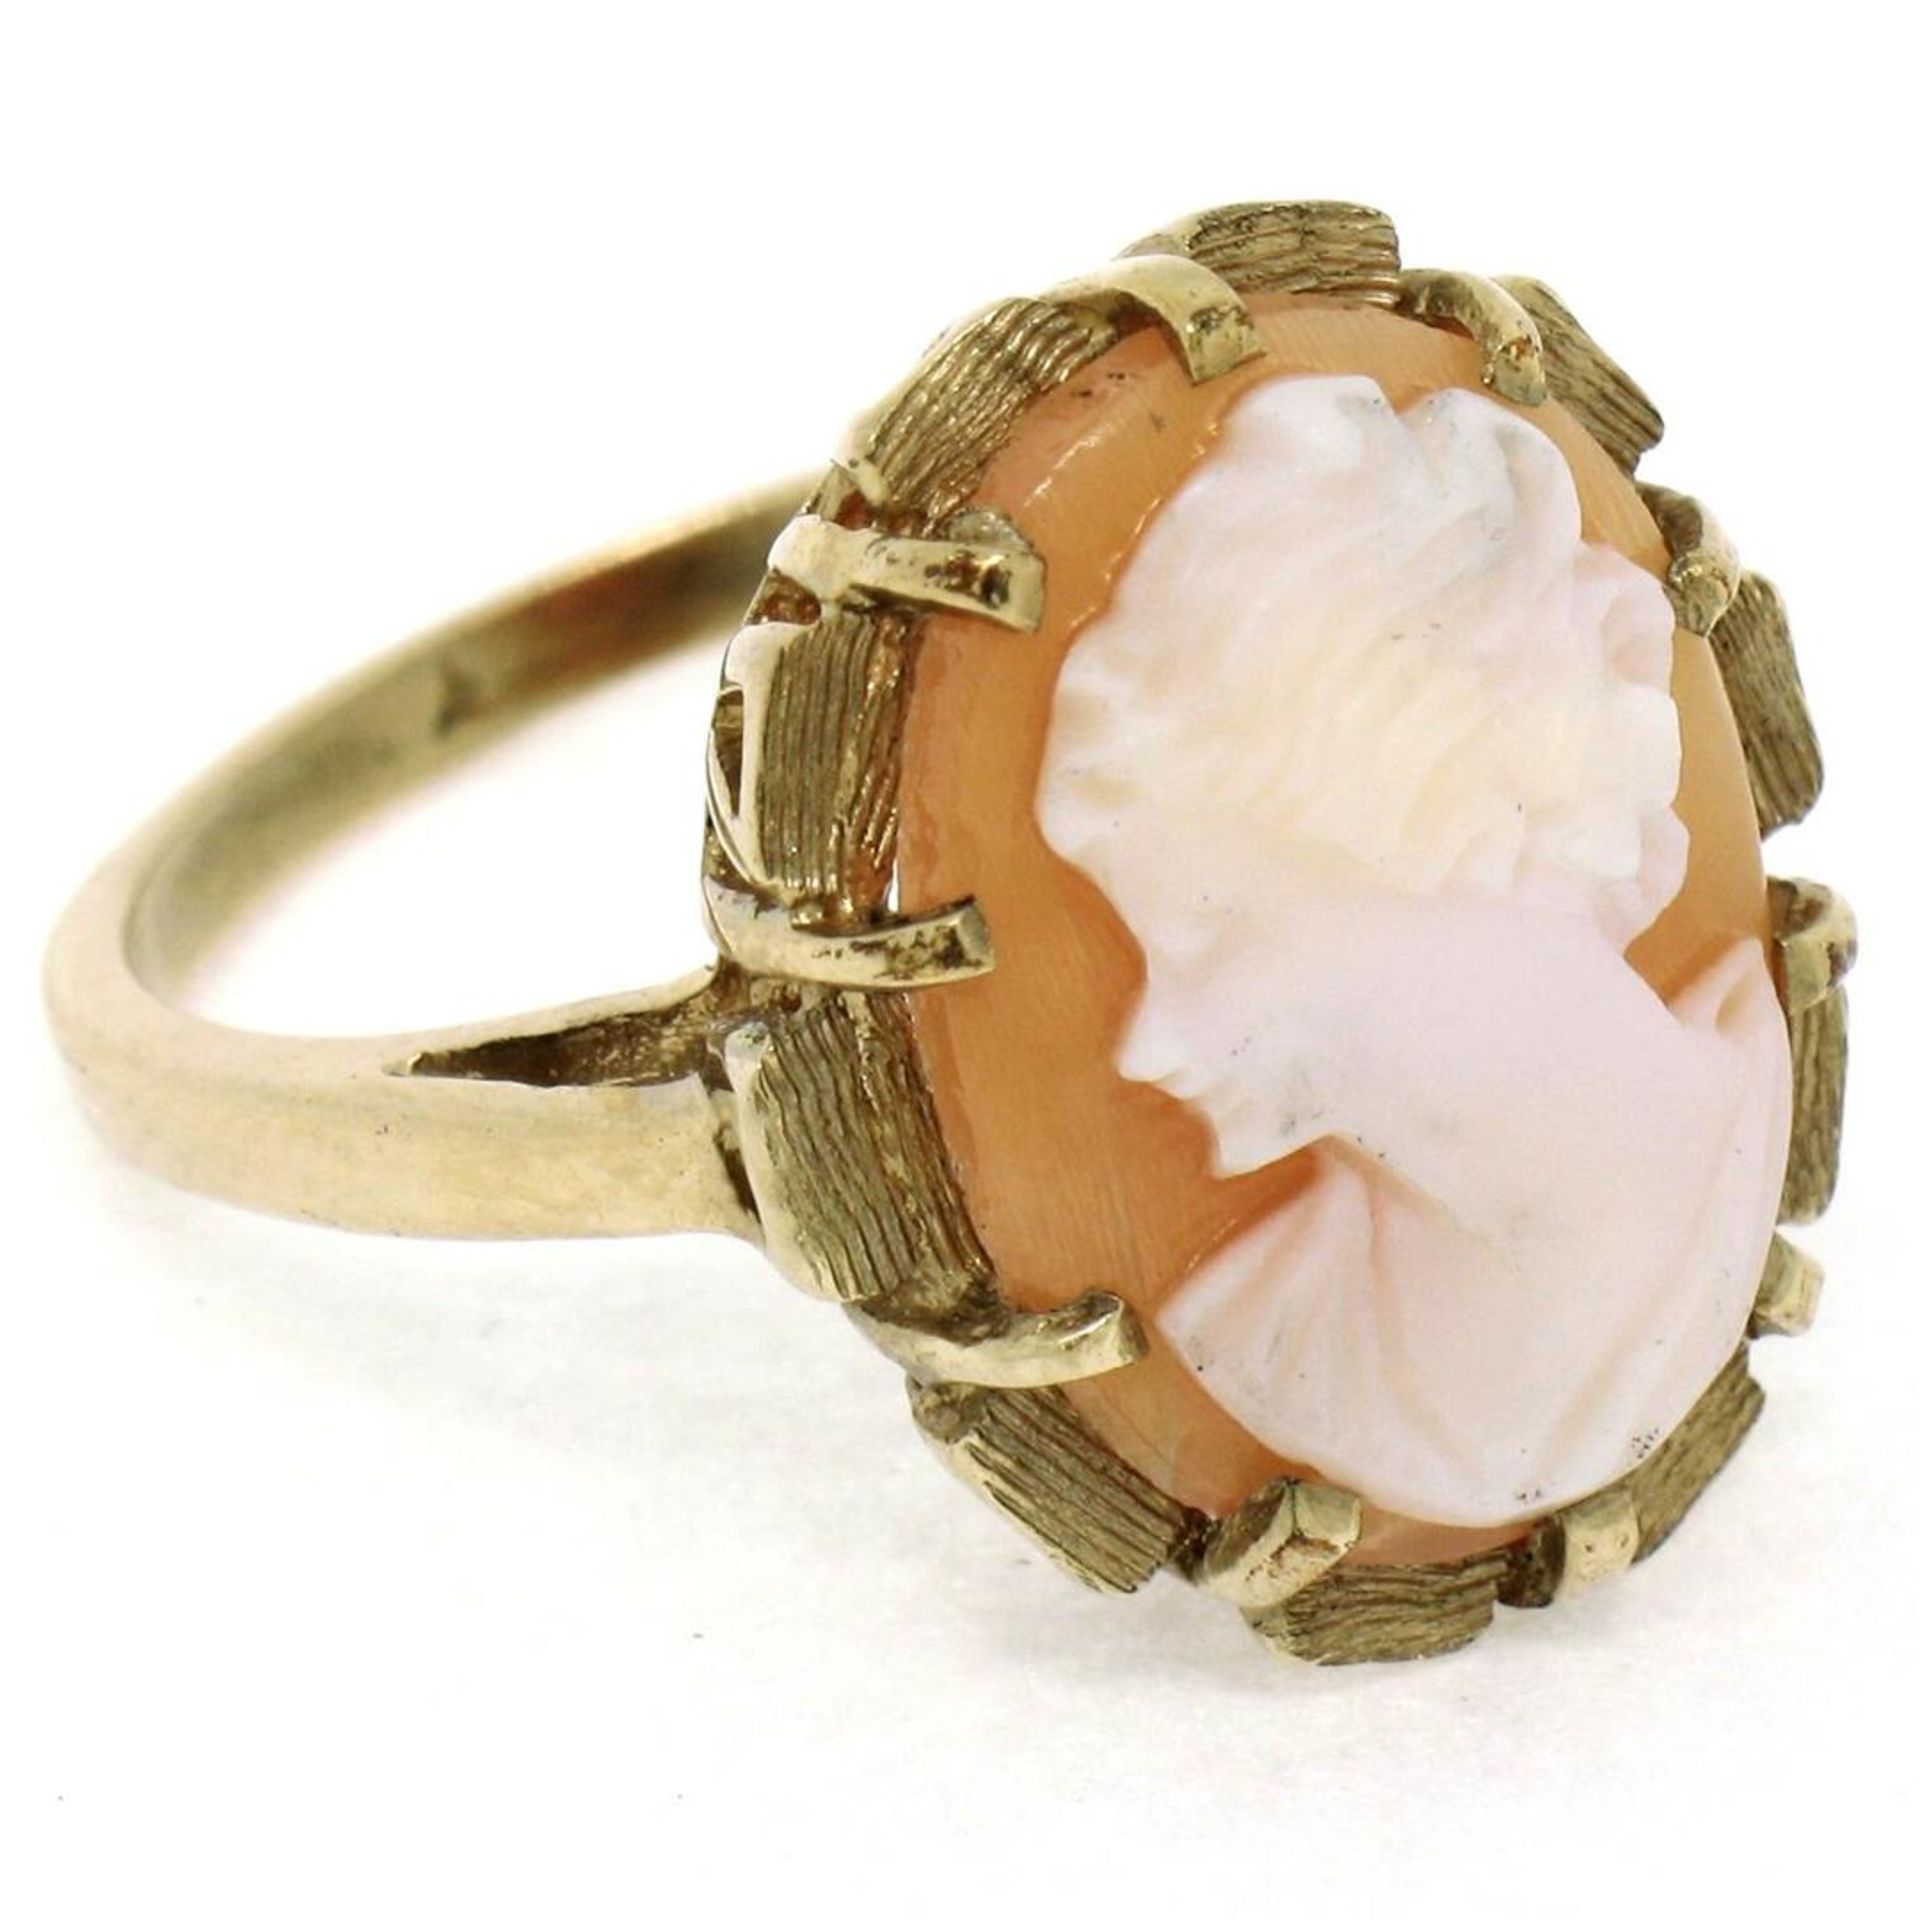 Vintage 14k Yellow Gold Oval Carved Shell Cameo Ring w/ Brushed Finish Frame - Image 7 of 8